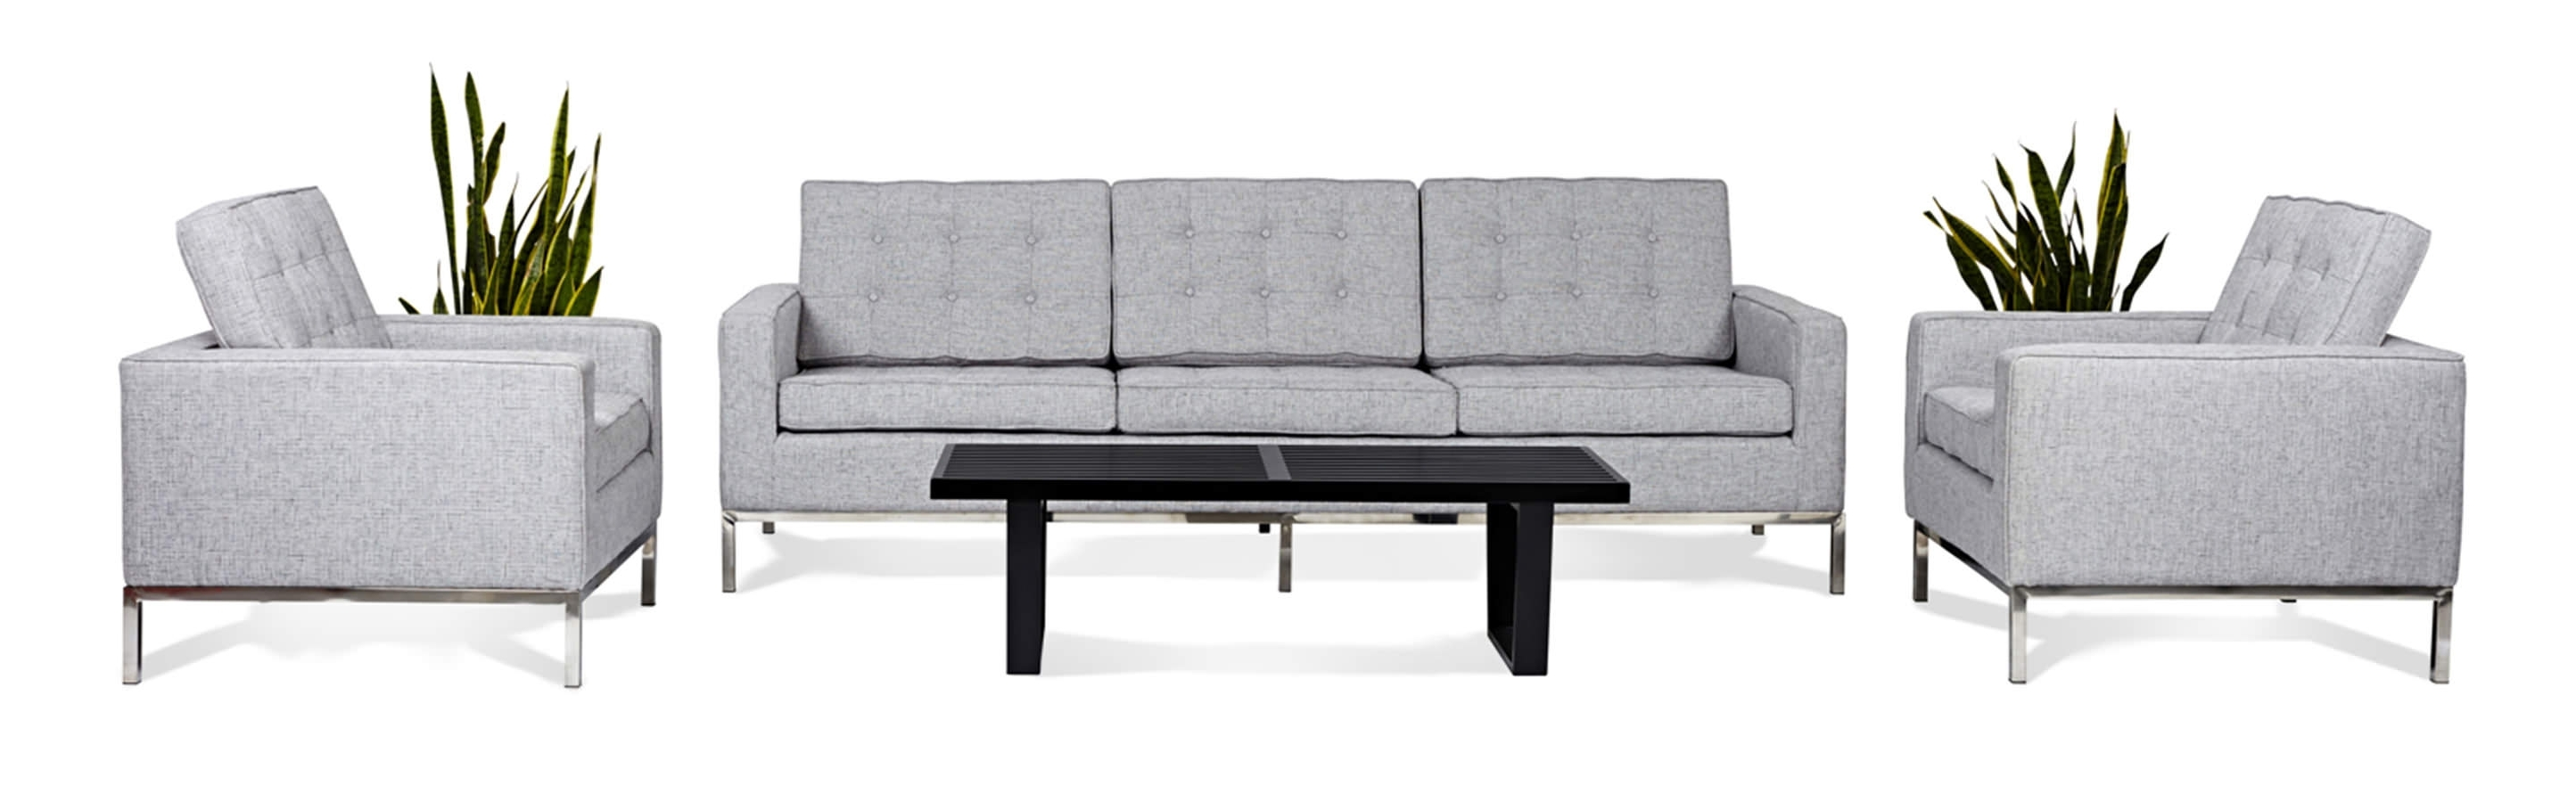 Florence Sofas And Loveseats In Popular Florence Knoll Style Living Room Sets (View 7 of 15)